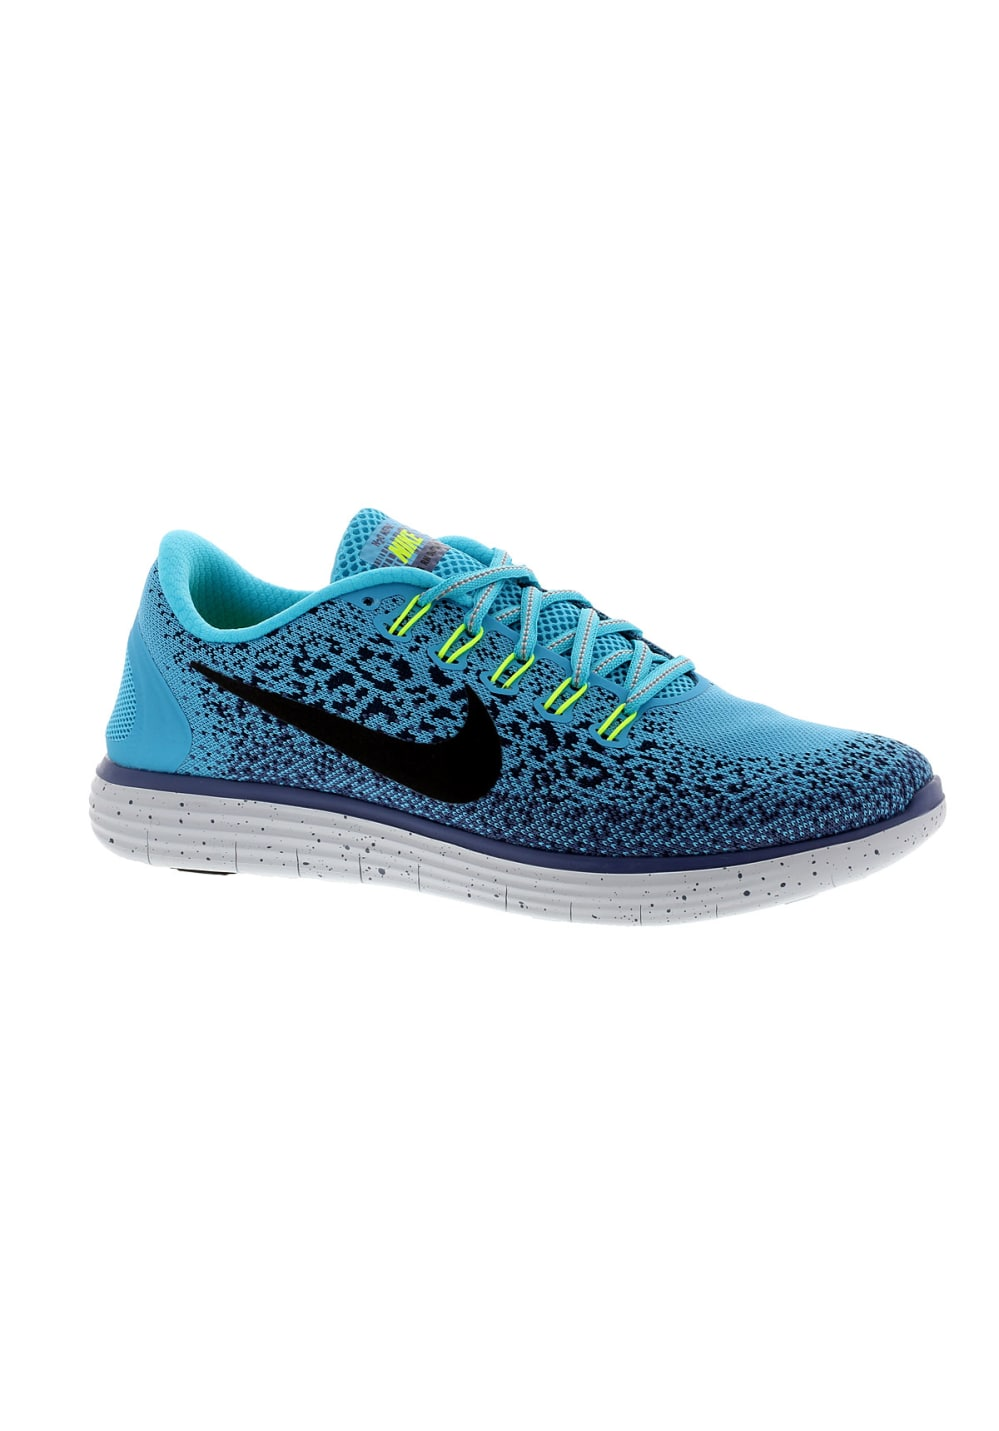 50f778ea98ecd Next. -45%. This product is currently out of stock. Nike. Free RN Distance  Shield - Running shoes for Women